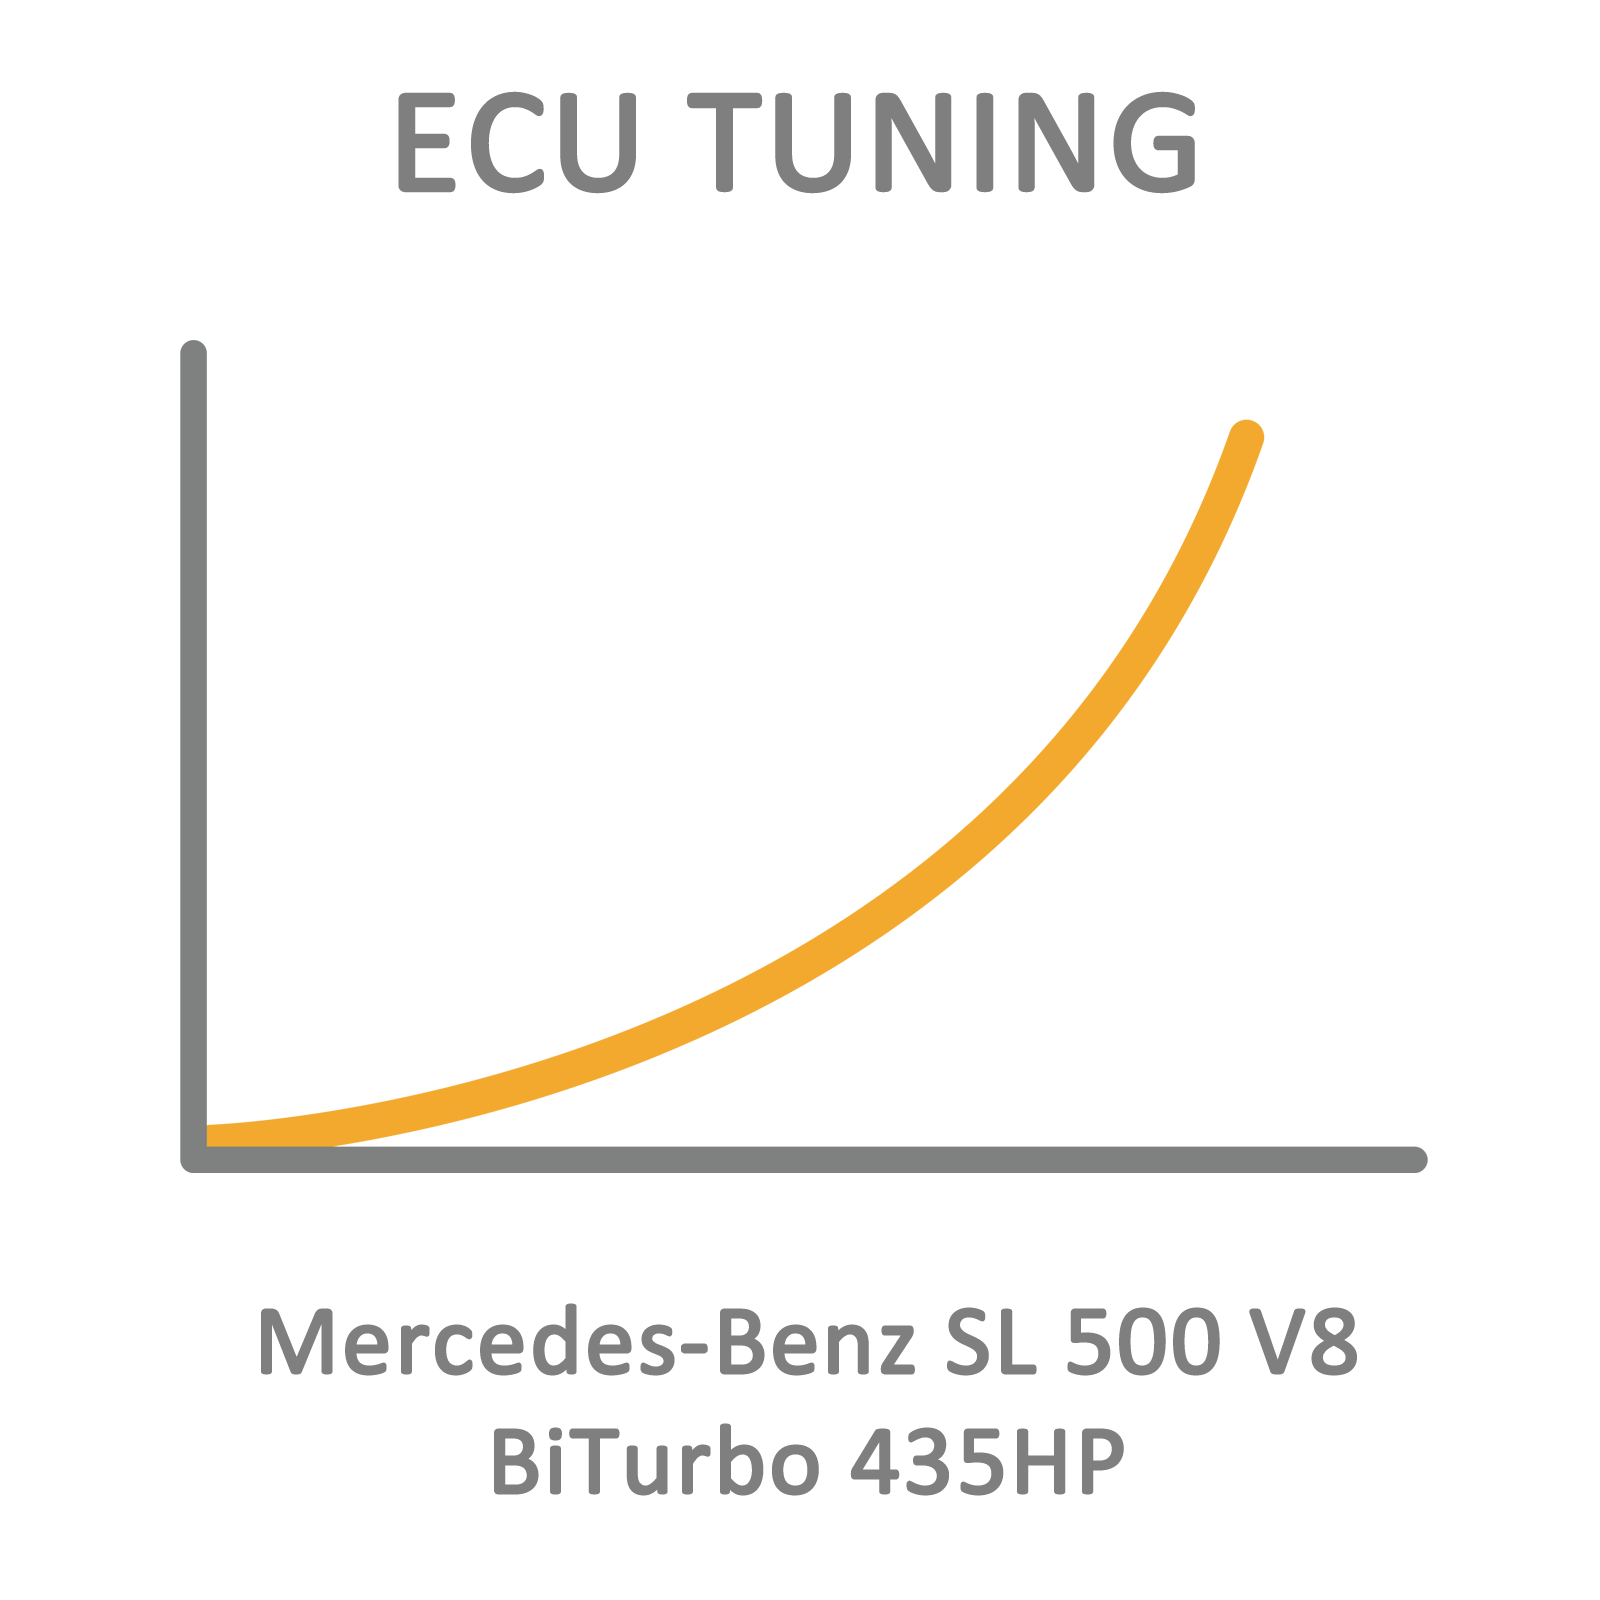 Mercedes-Benz SL 500 V8 BiTurbo 435HP ECU Tuning Remapping